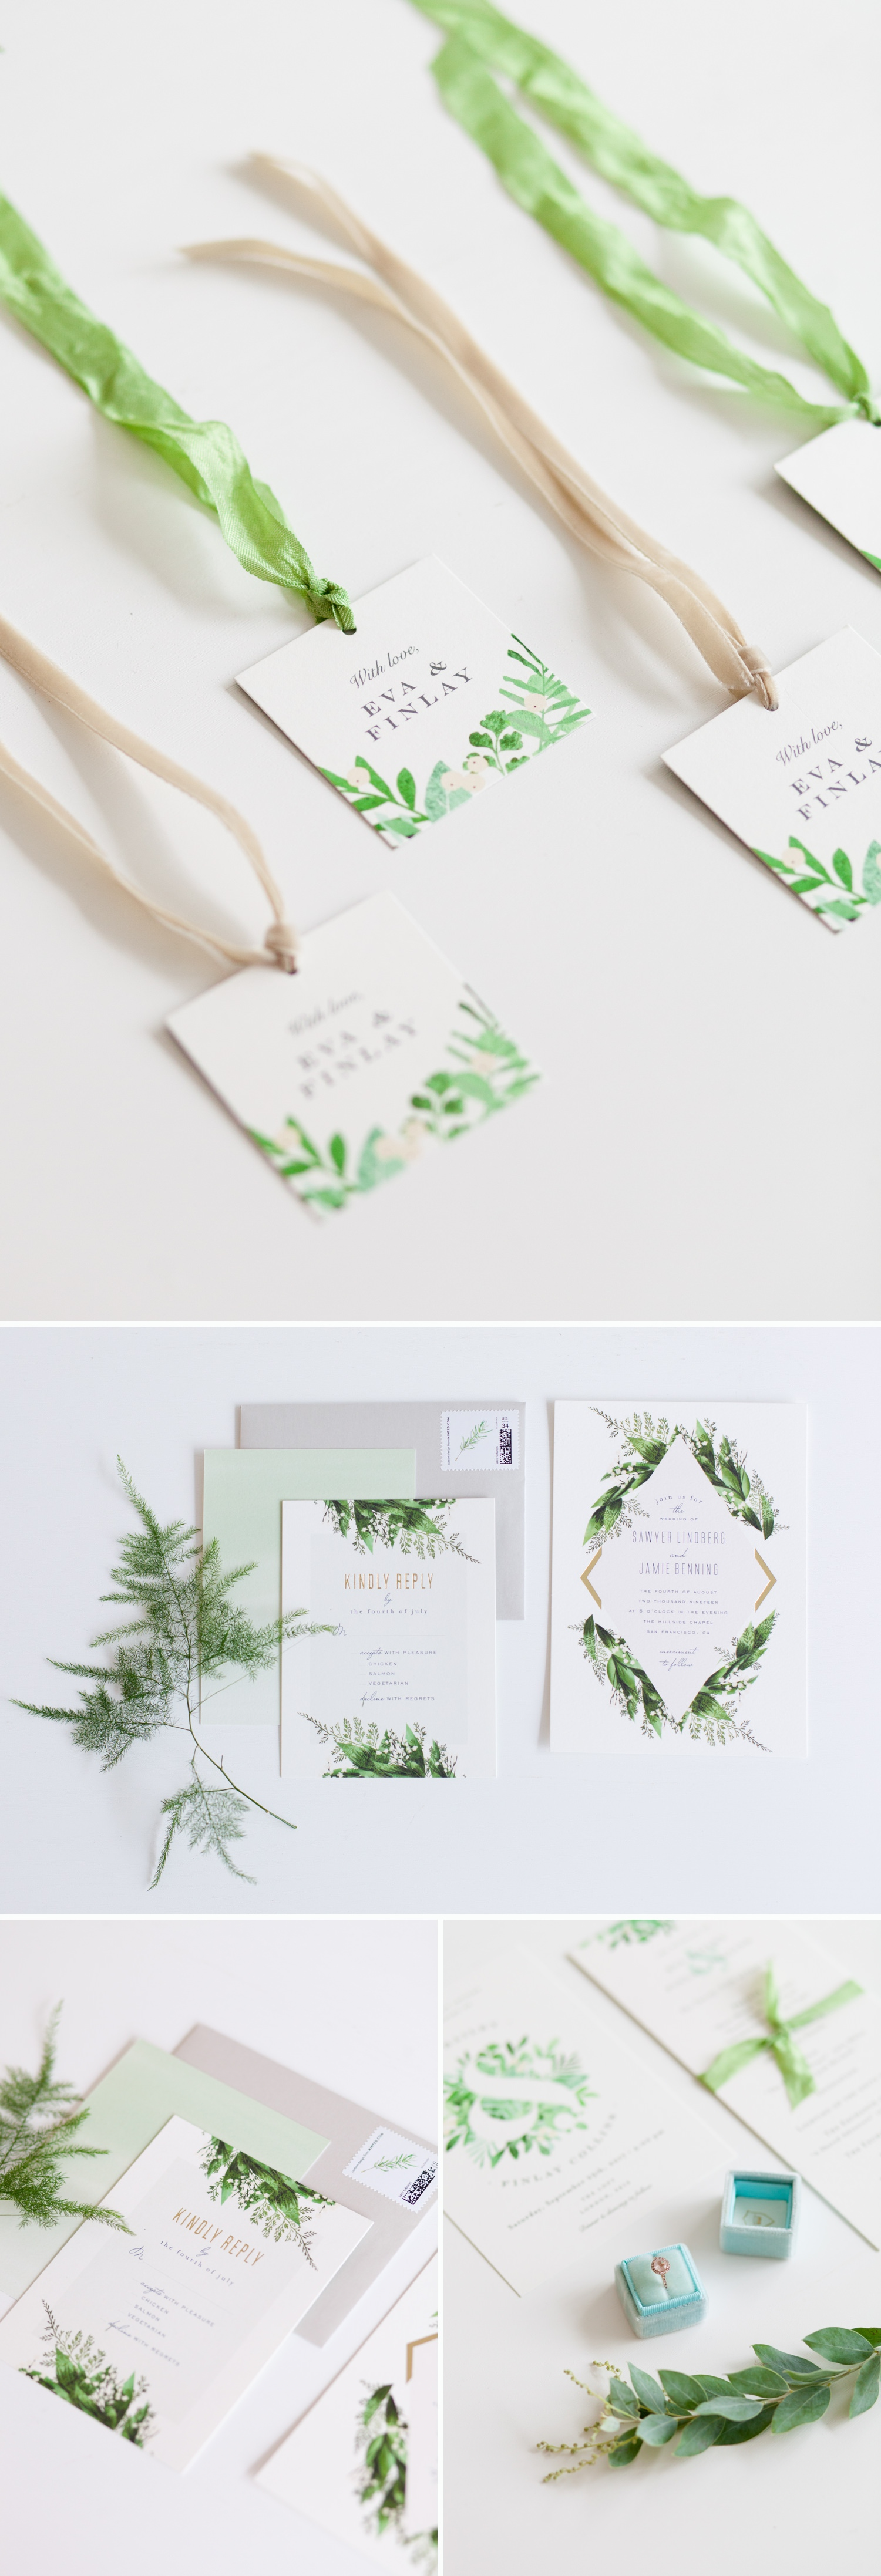 Industrial Chic Botanical Wedding 5 - botanical wedding stationery